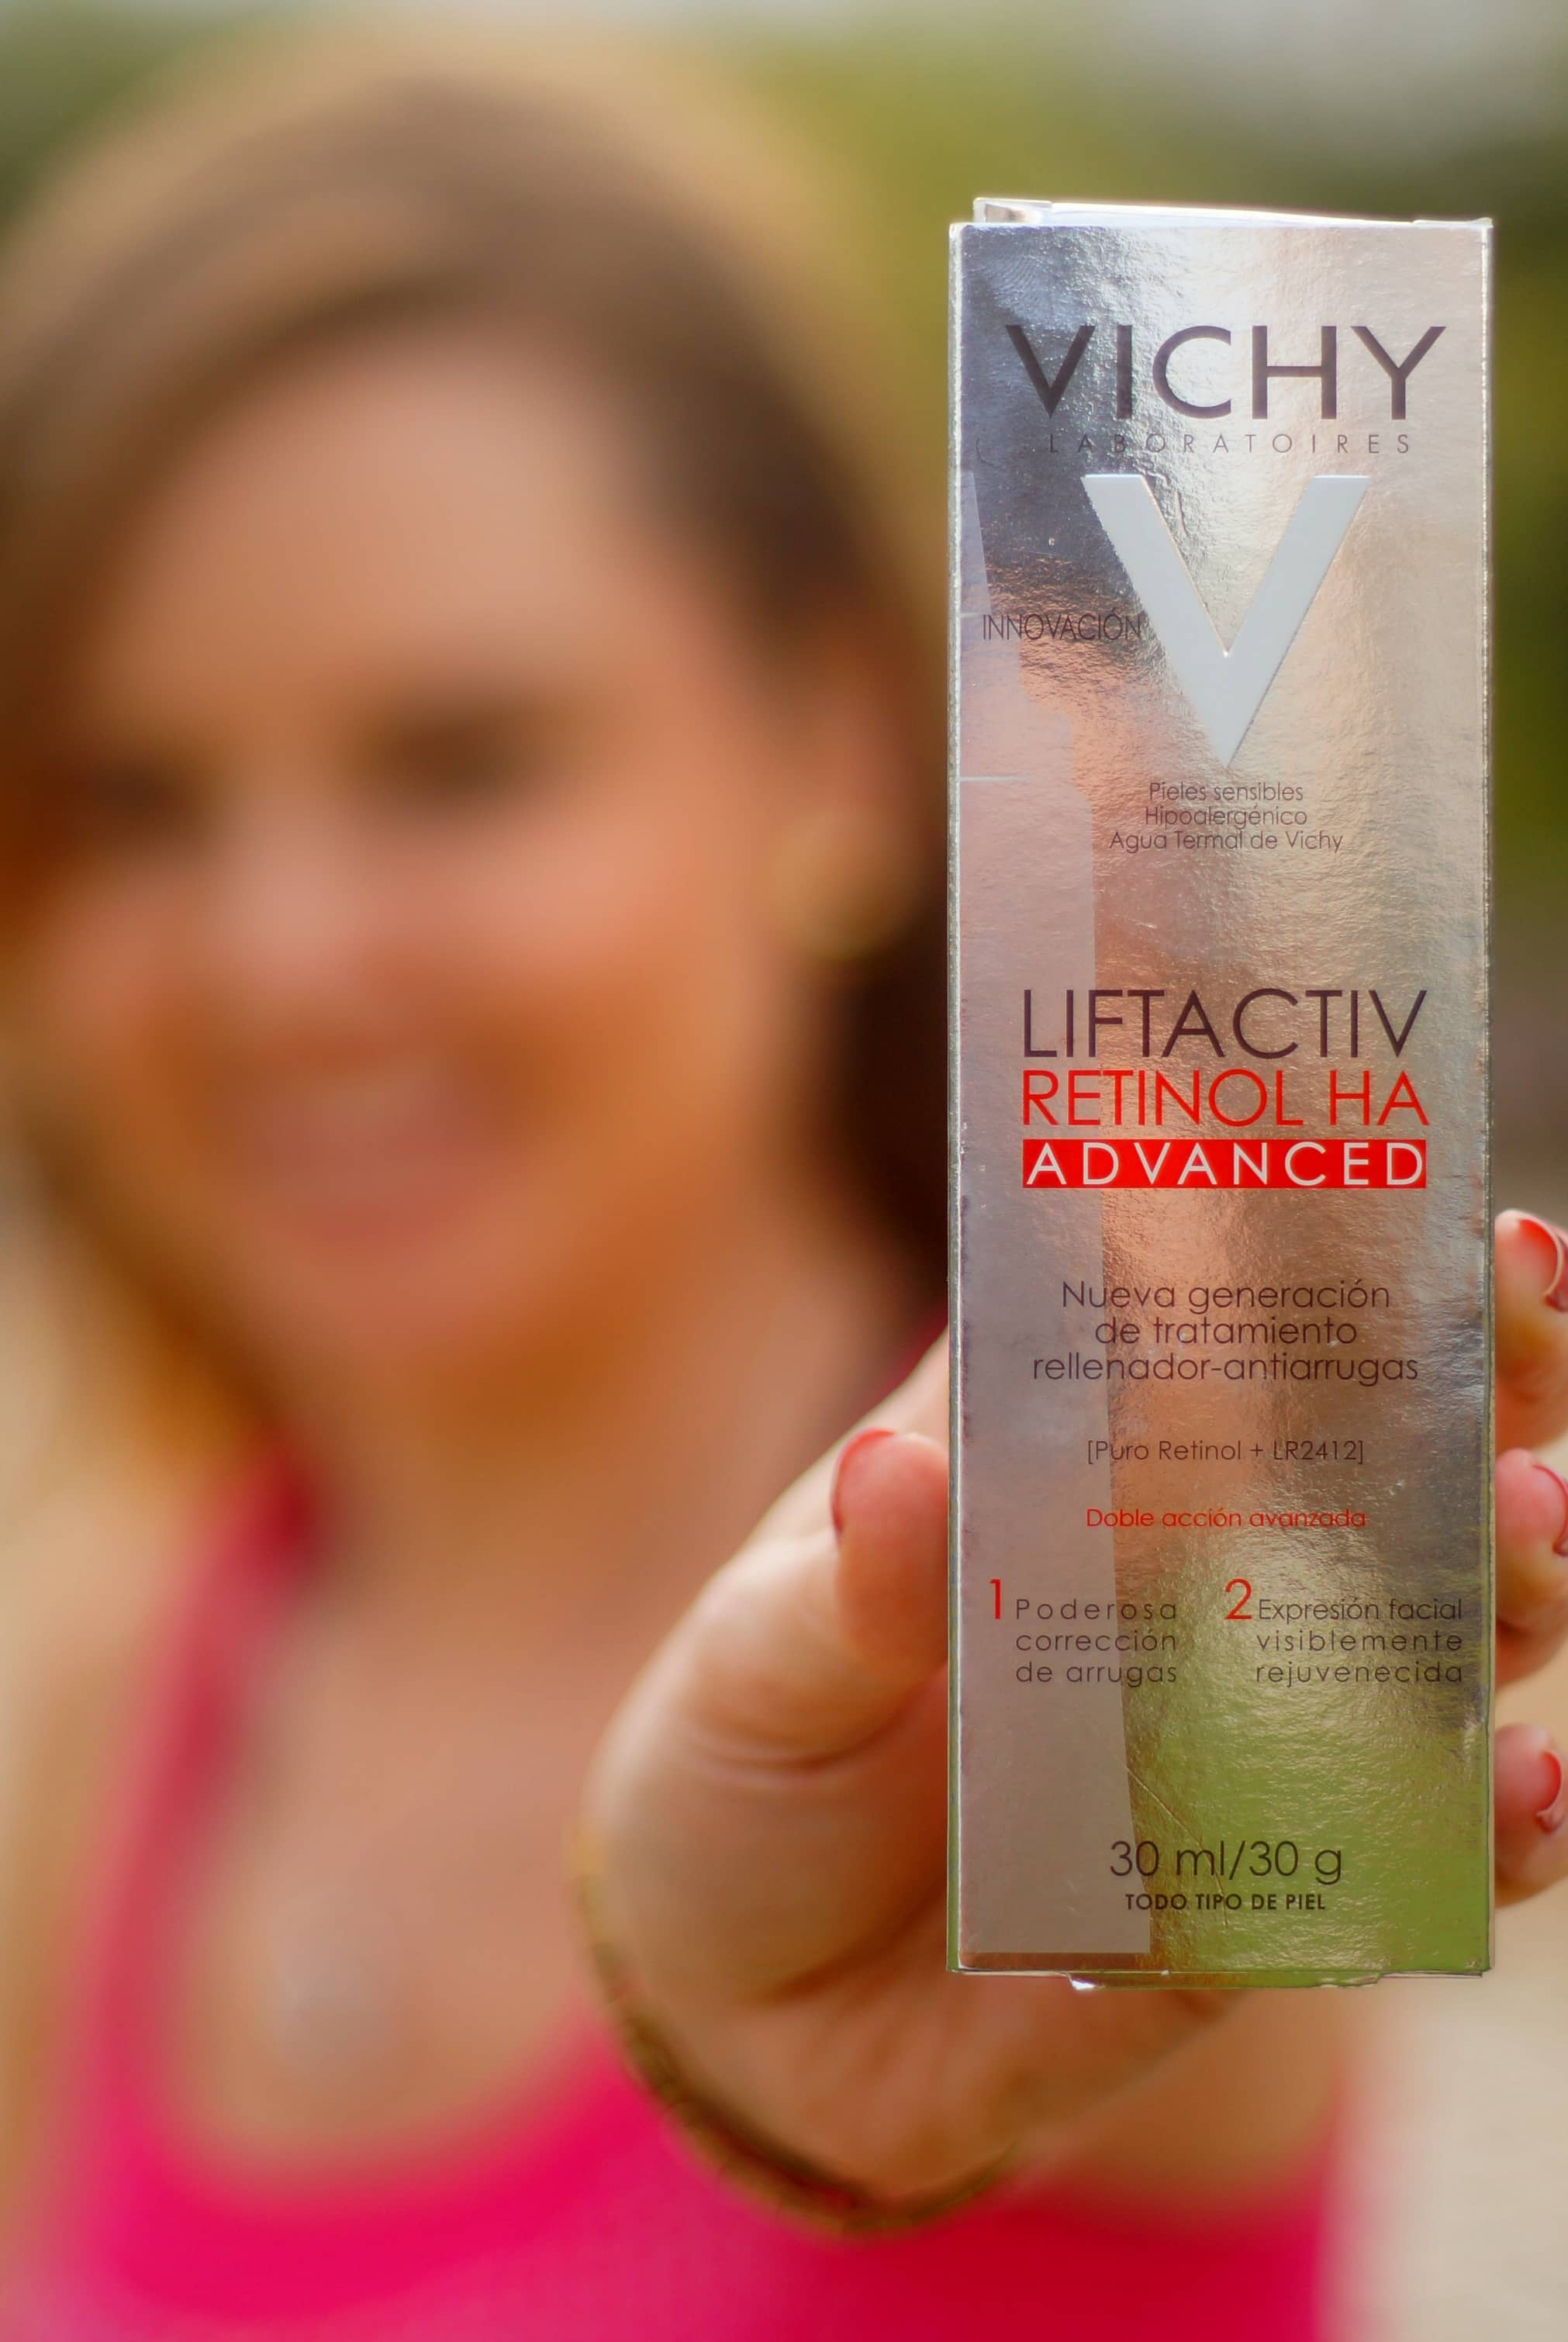 Liftactive Retinol HA Advanced